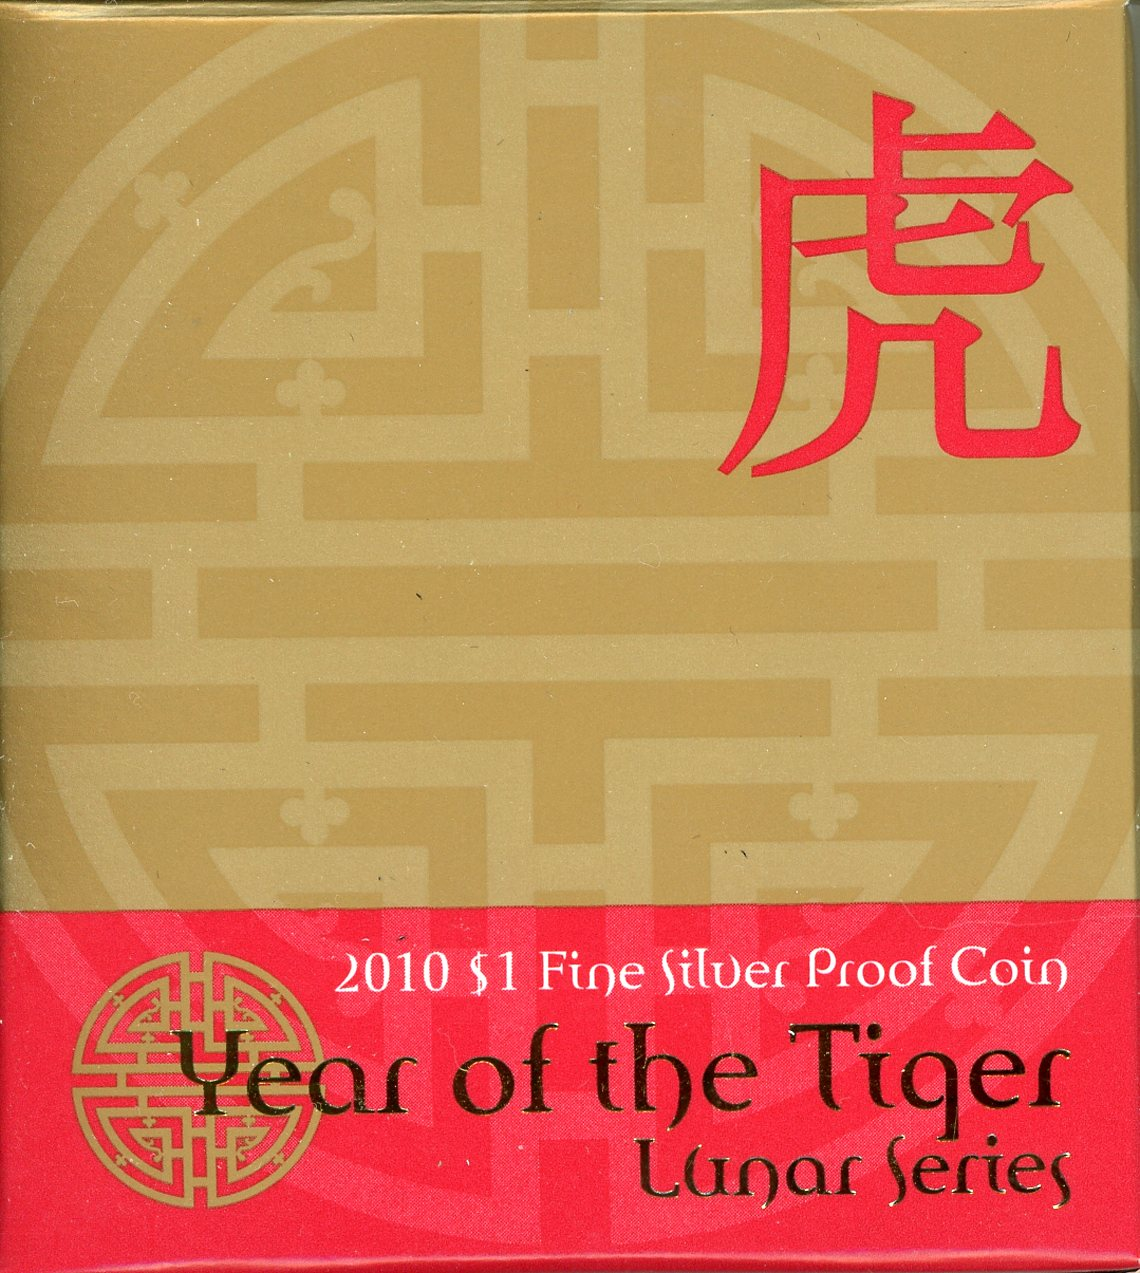 Thumbnail for 2010 Lunar Series - Year of the Tiger $1 Silver Proof Coin